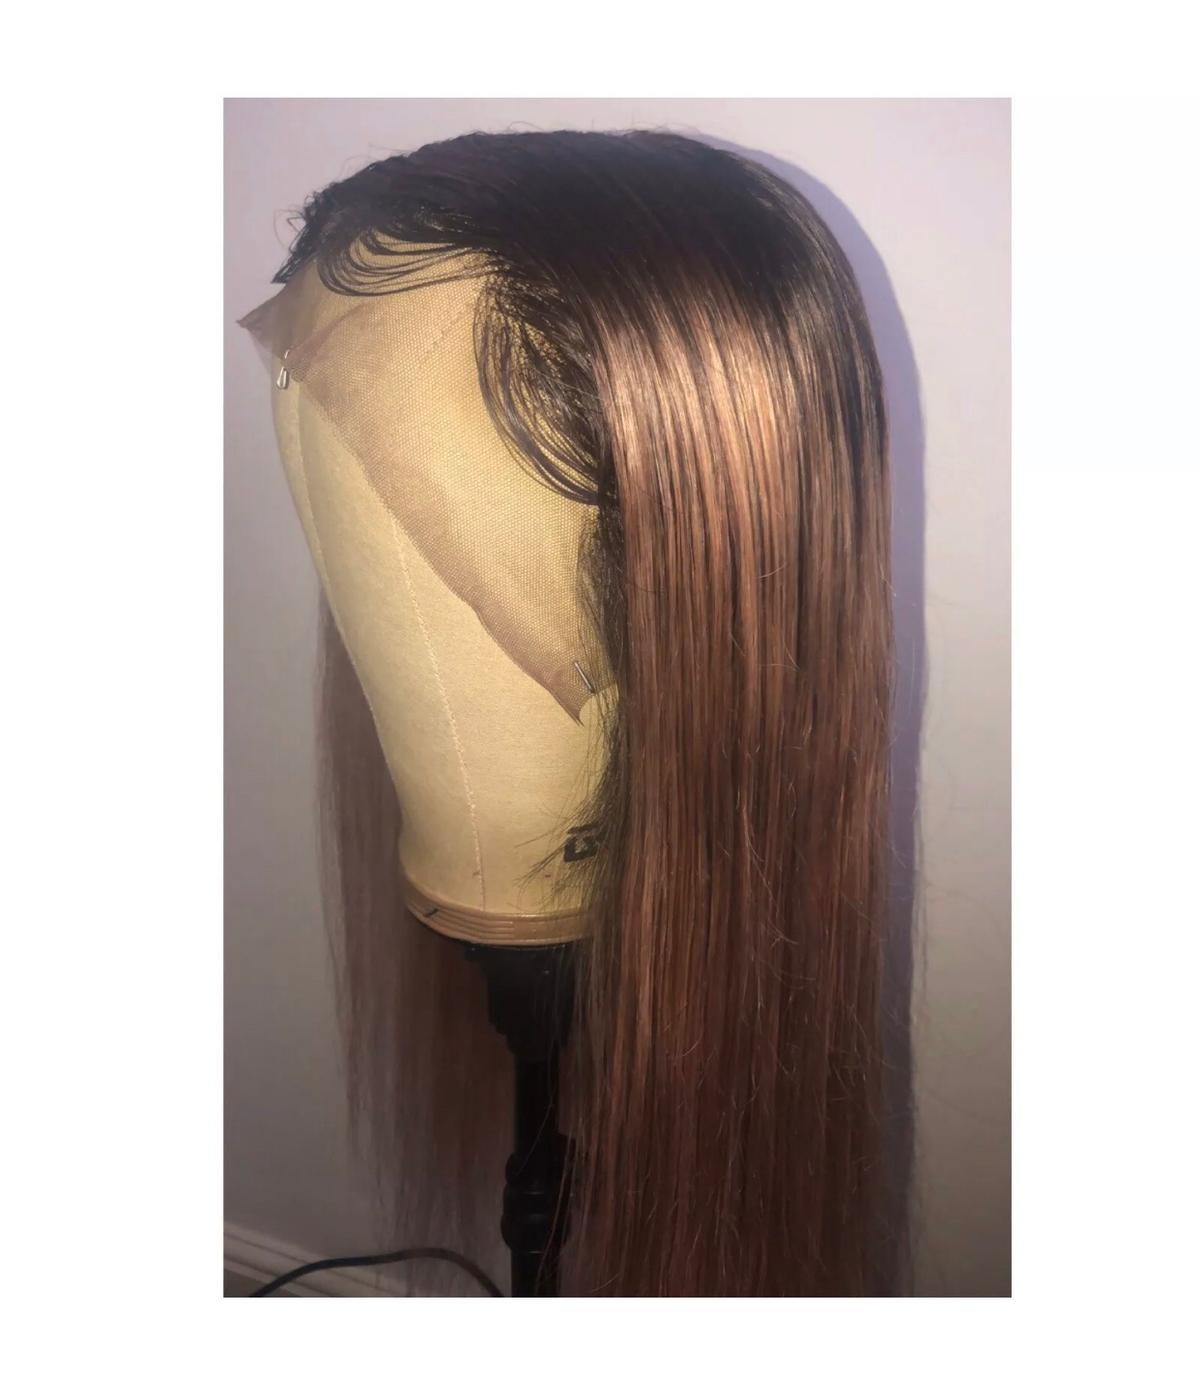 "100% Human Hair, Free Way Parting, Full Lace, Rose Gold Ombré Wig  ♥︎ Heat Resistant  ♥︎ Breathable Cap  ♥︎ 22""  ♥︎ £230"